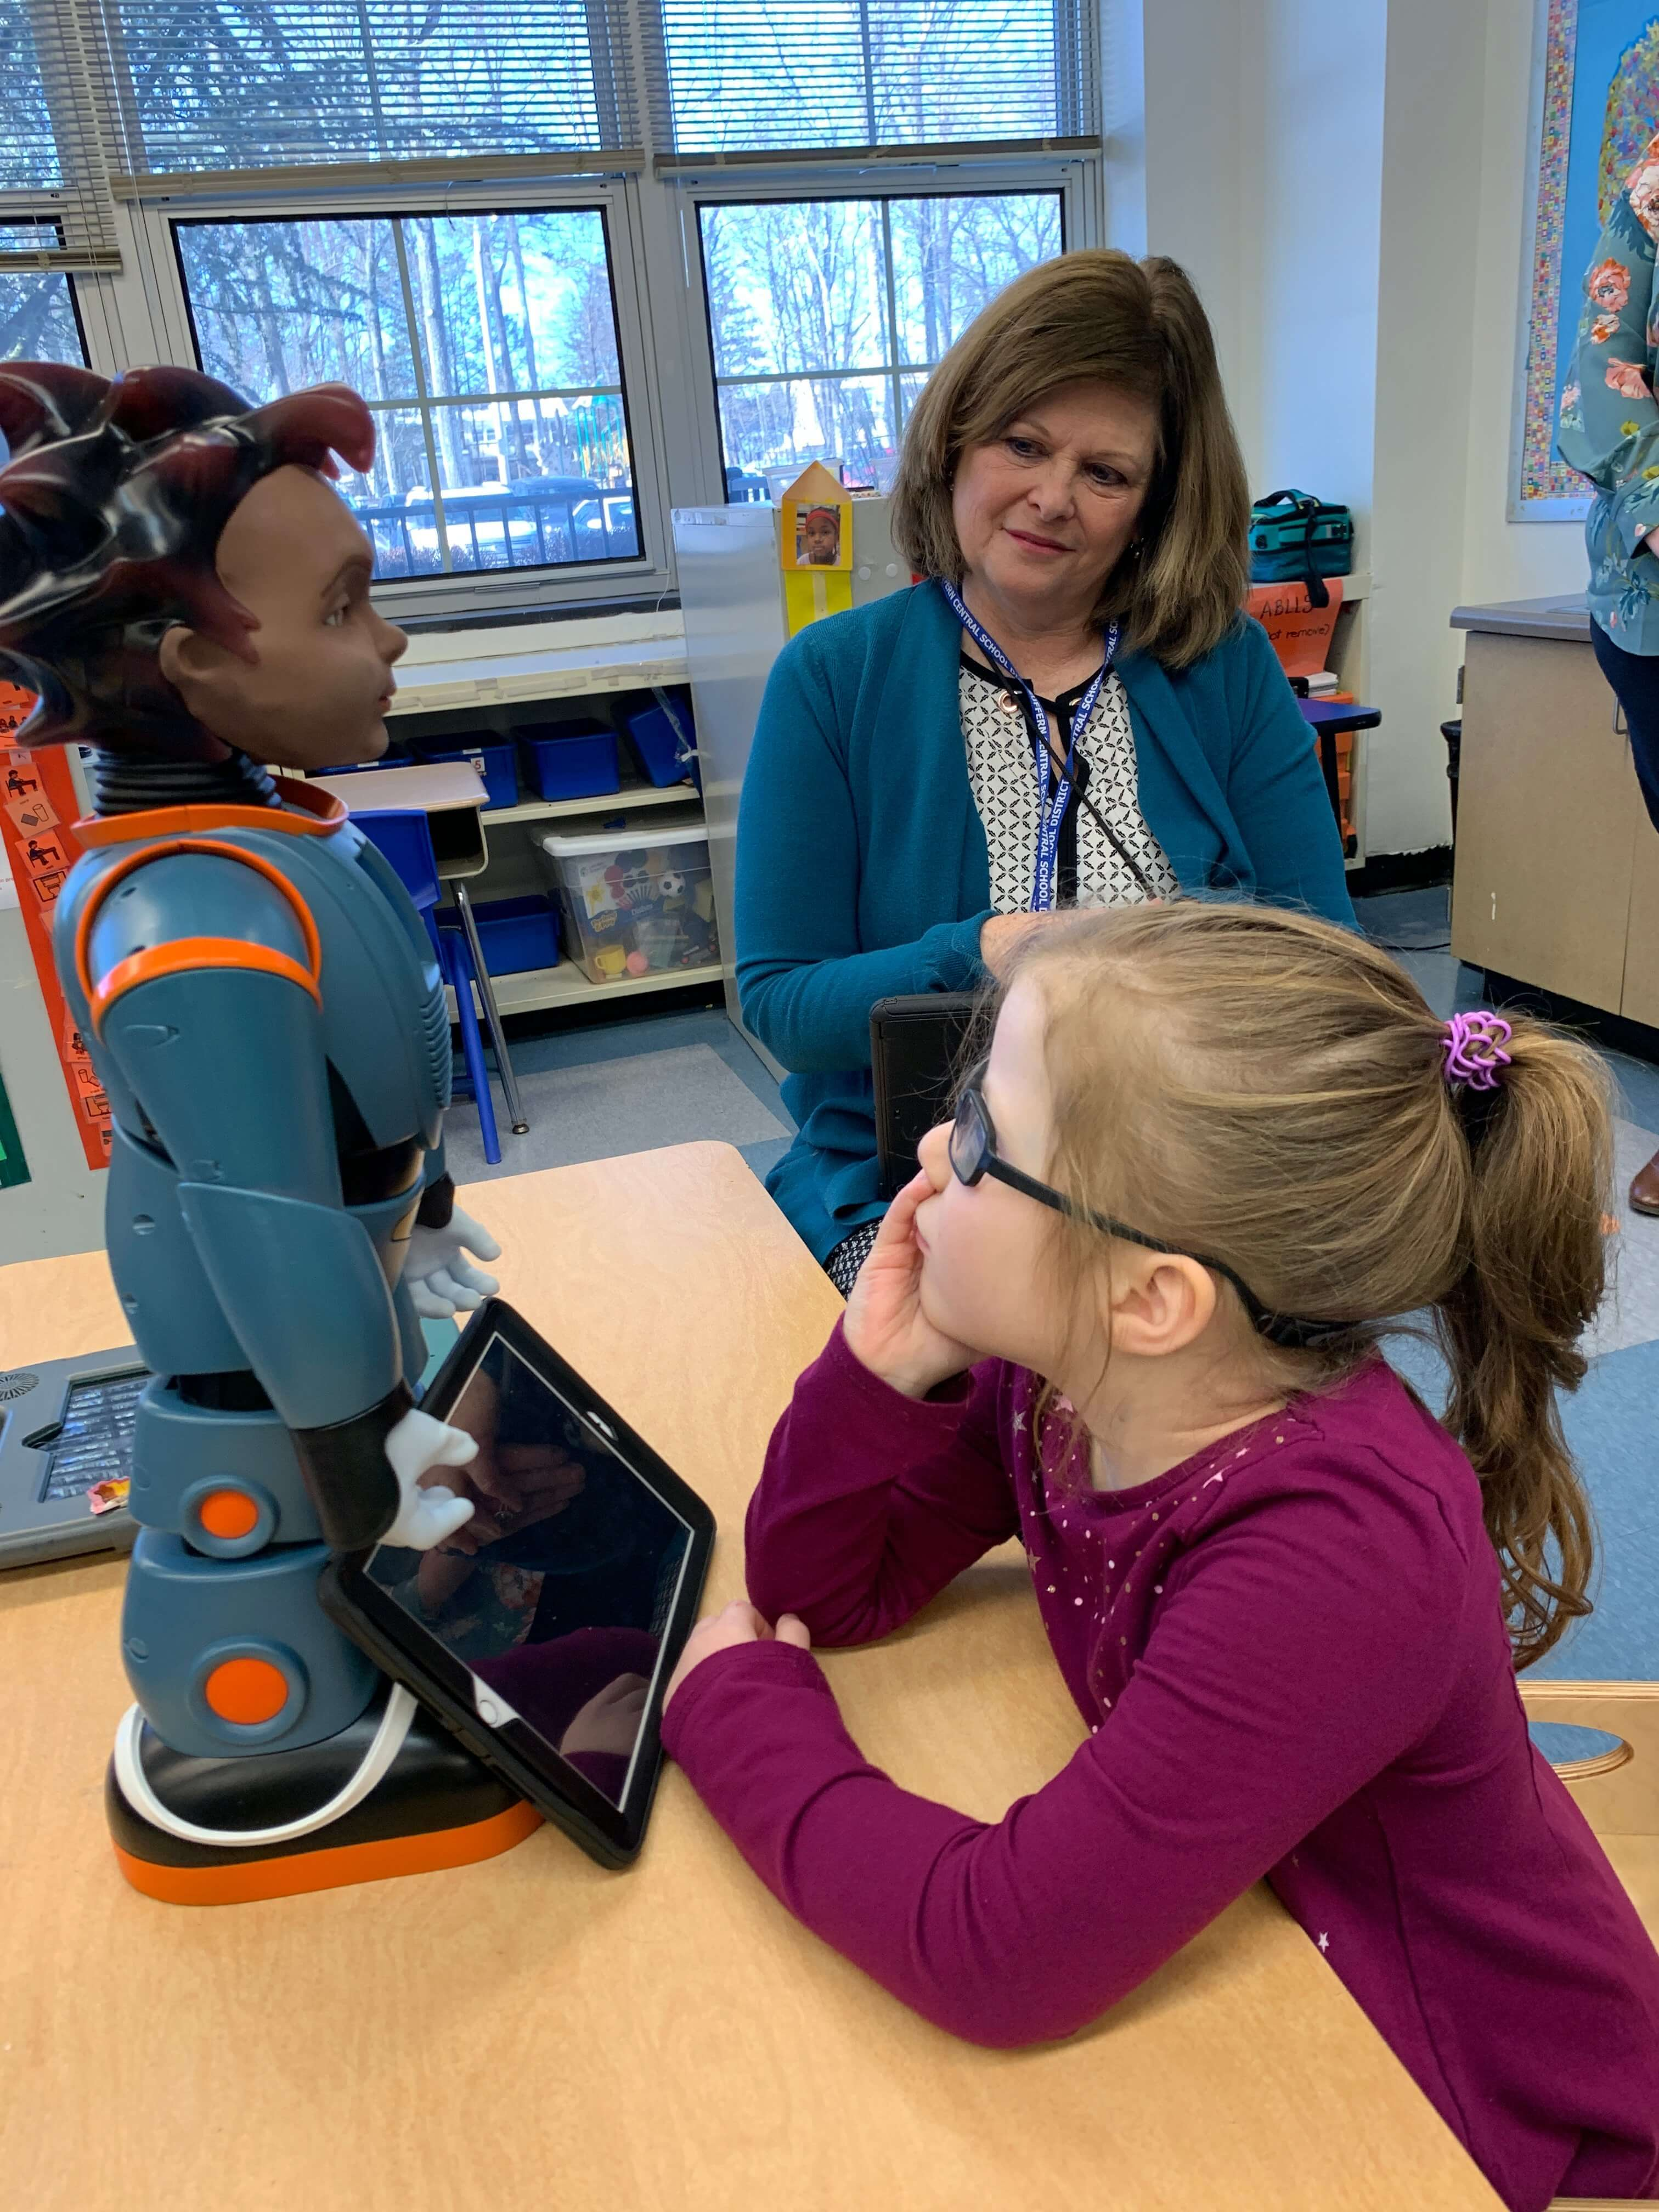 Autistic student engaging with RoboKind's social-emotional robots